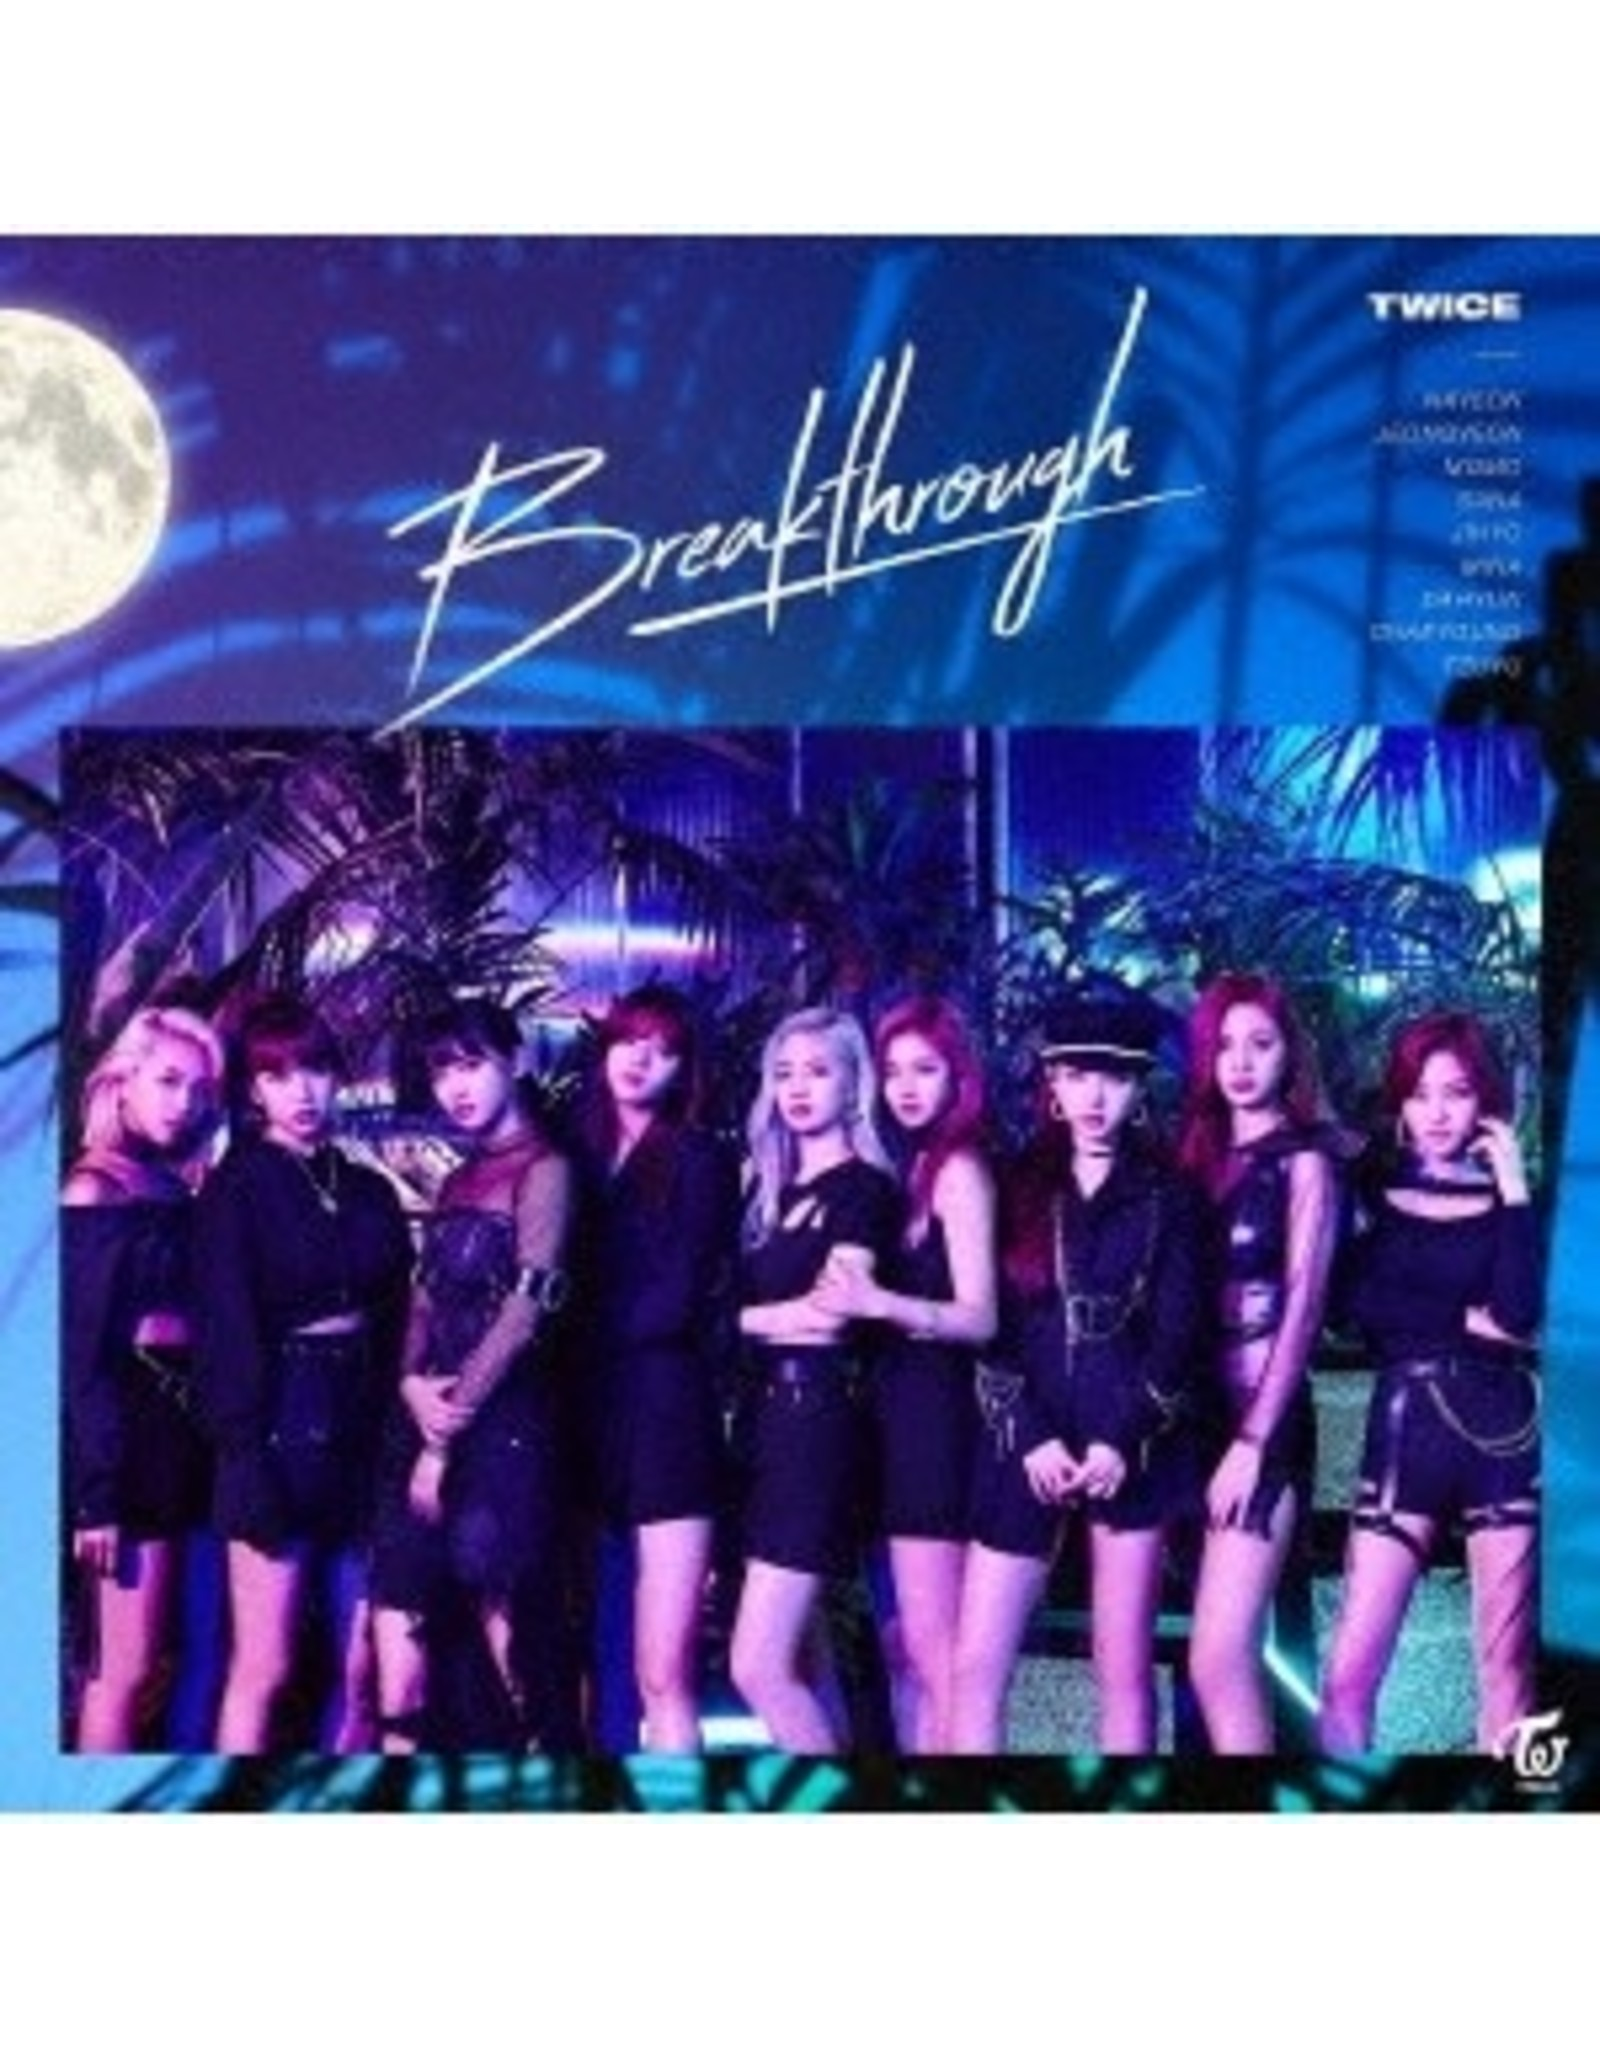 WP [CD]BREAKTHROUGH [TRADING CARD FOR 1ST PRESSING ]